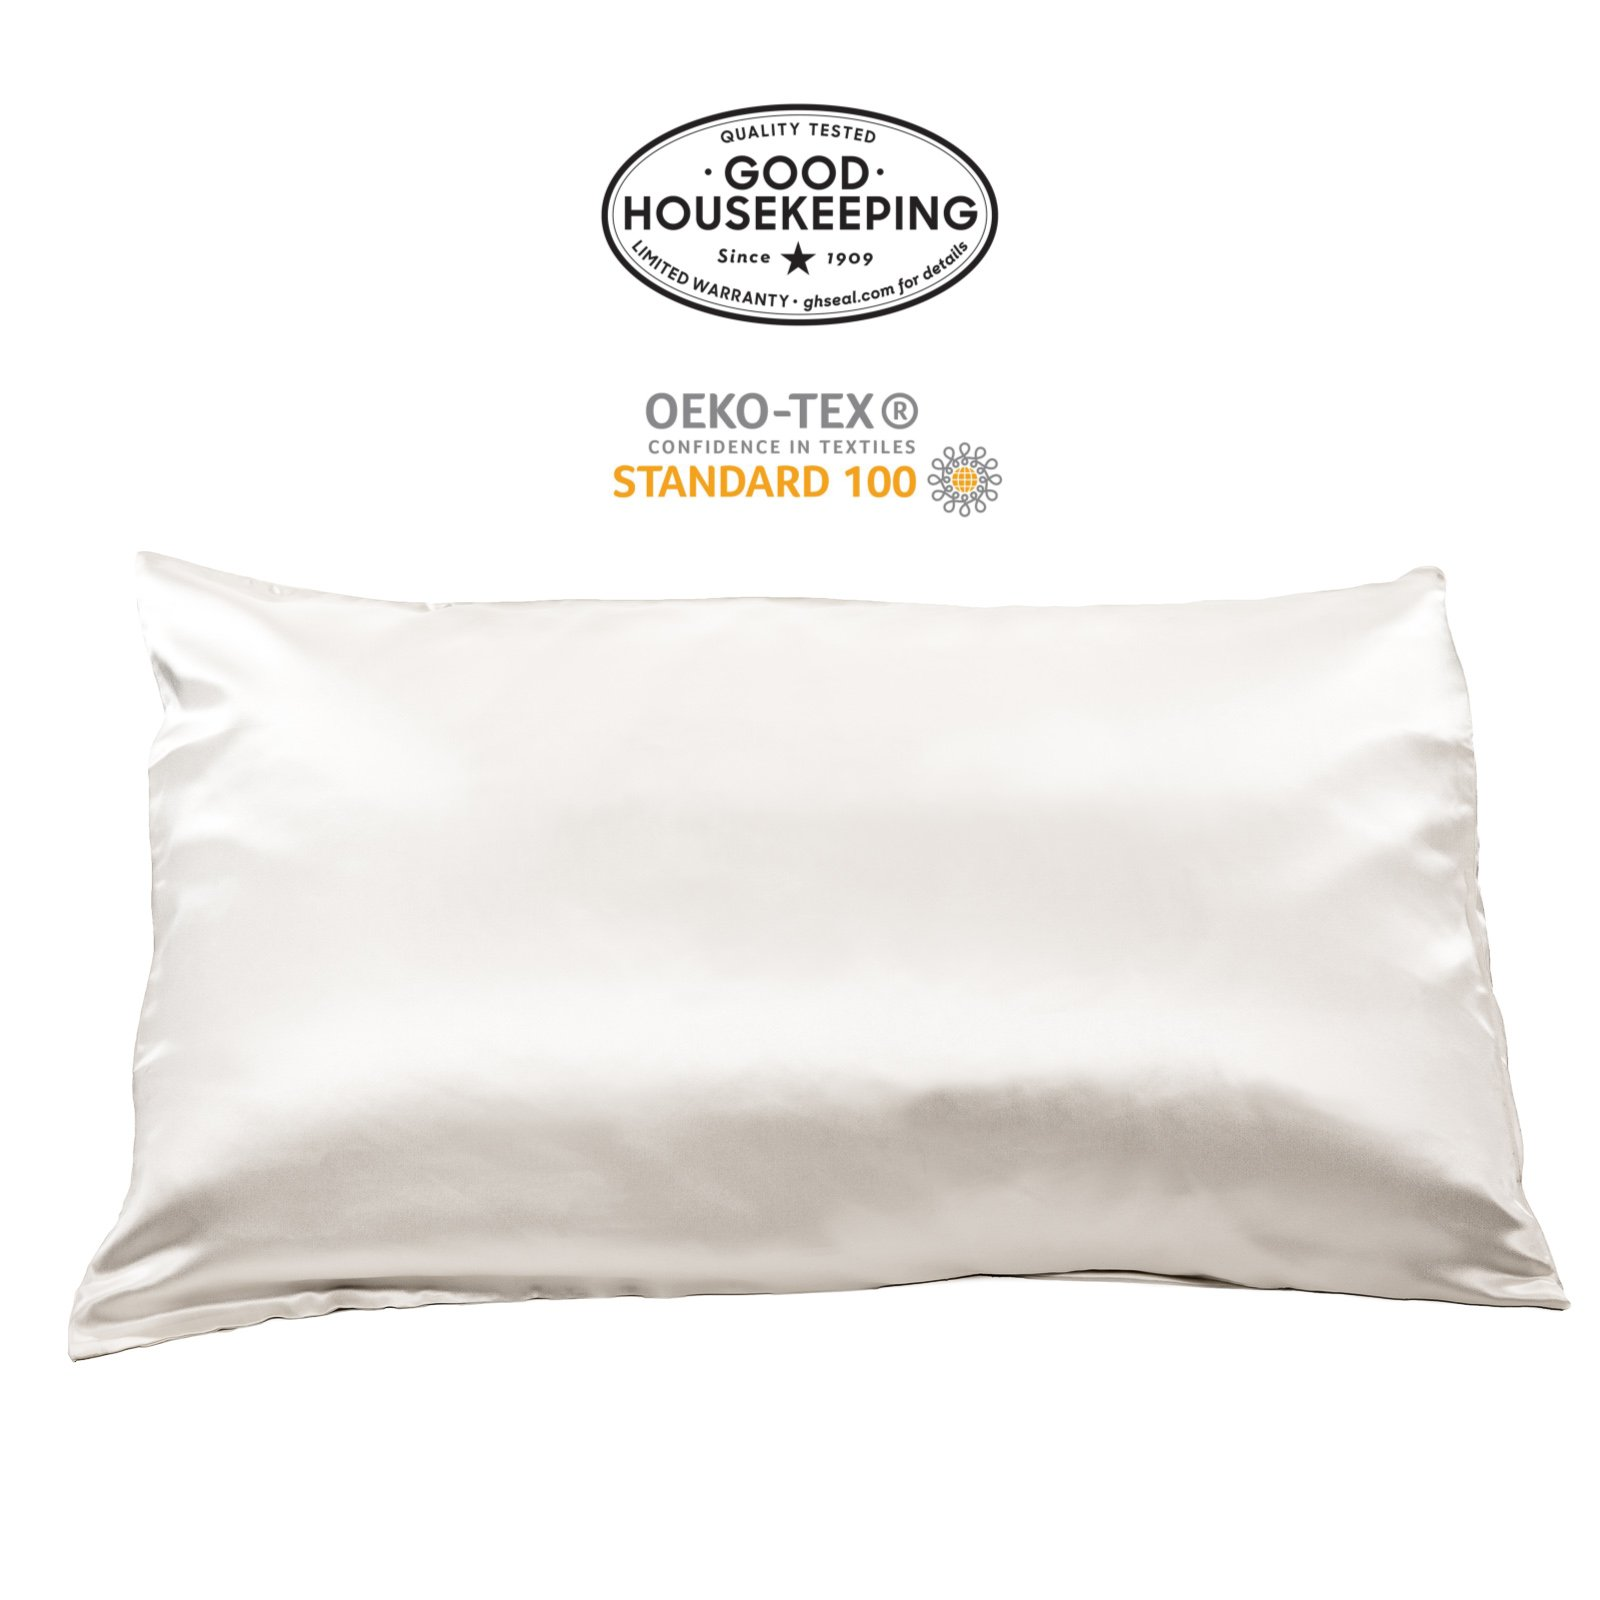 Fishers Finery 19mm Mulberry Silk King Pillowcase, Natural White